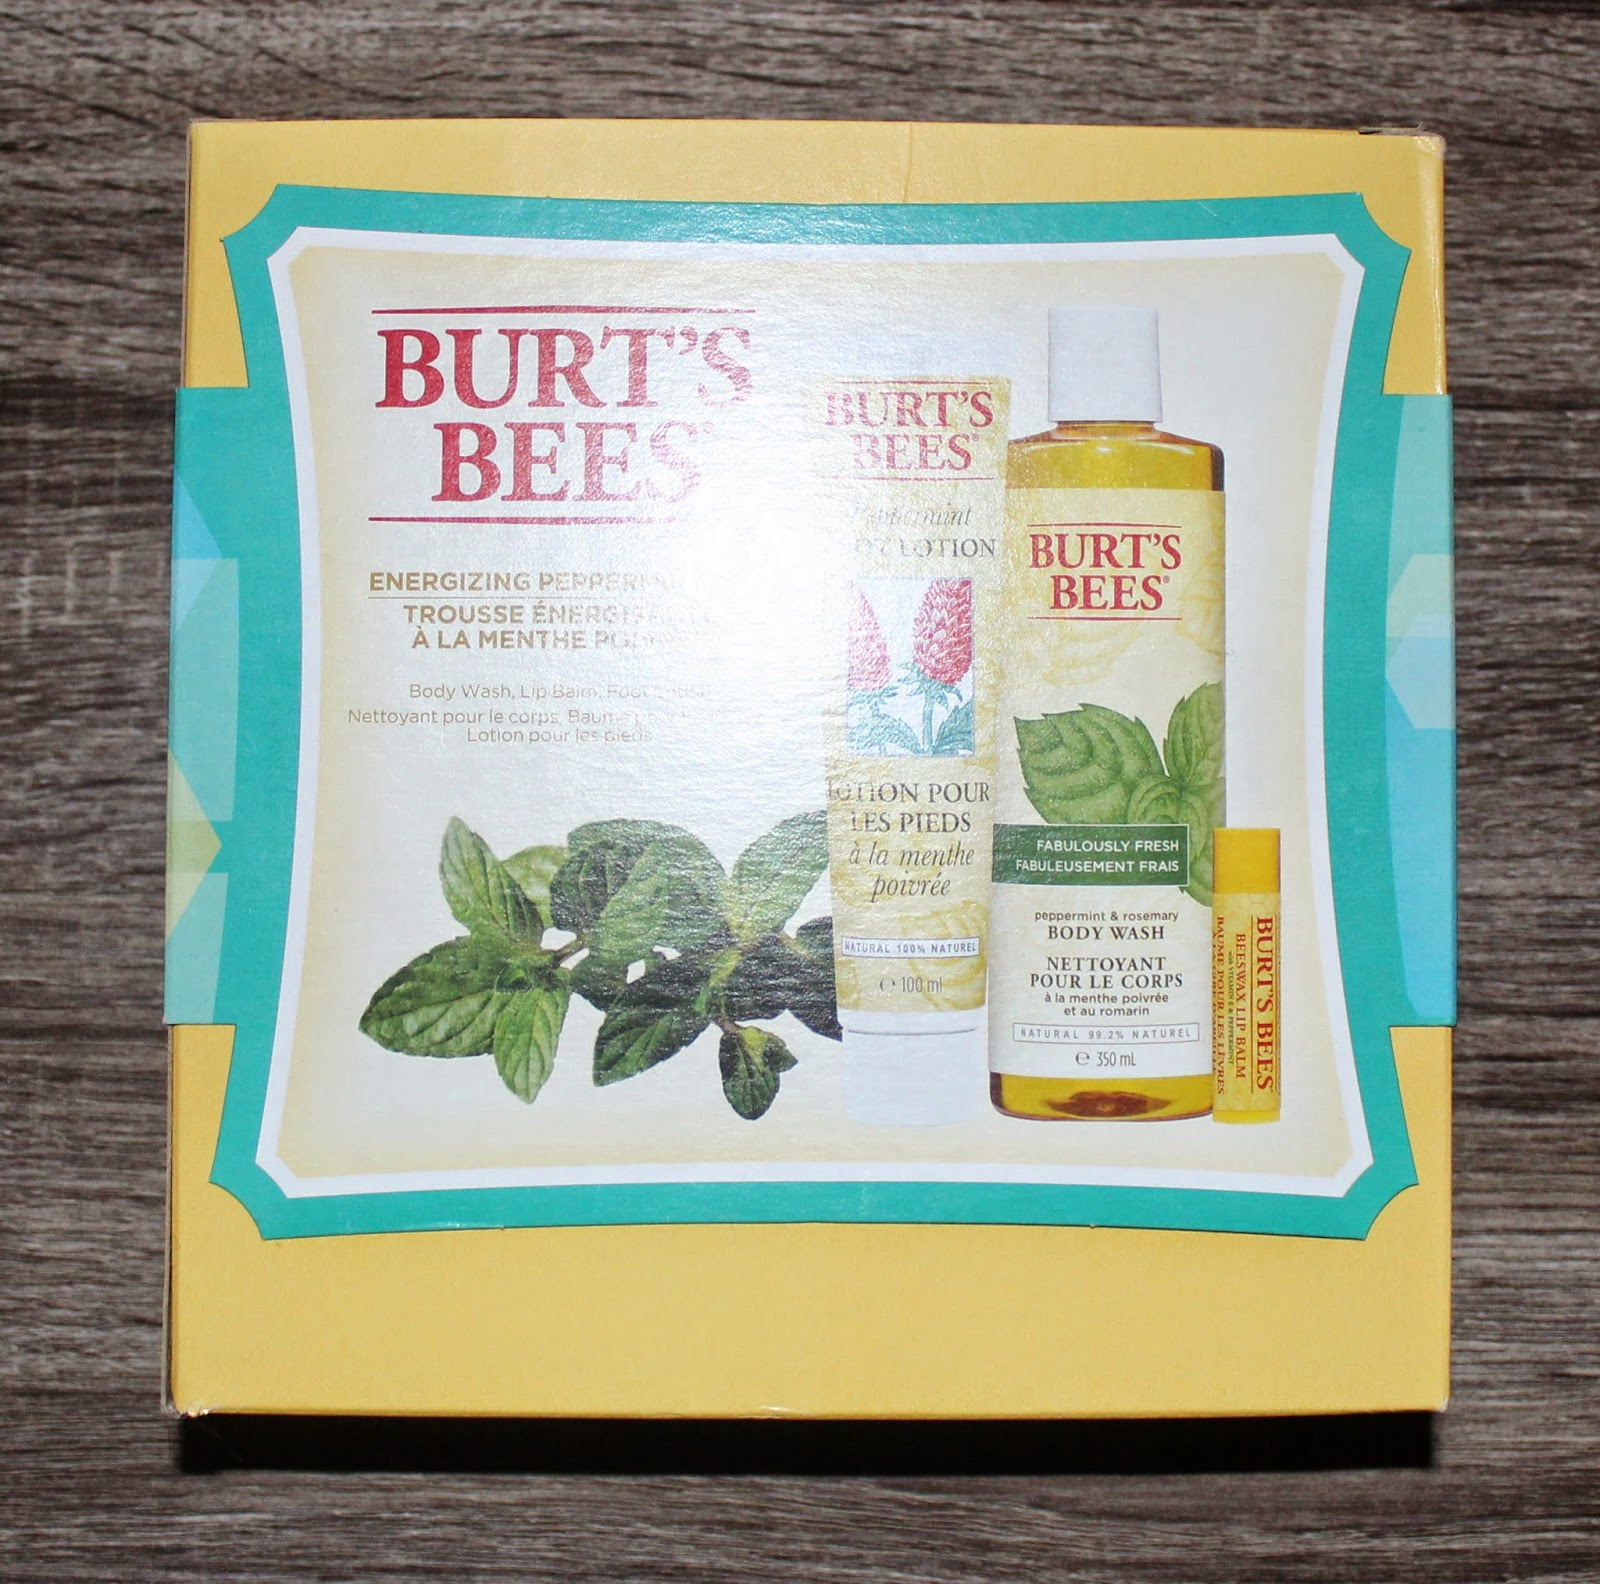 Burt's Bees Energizing Peppermint Kit